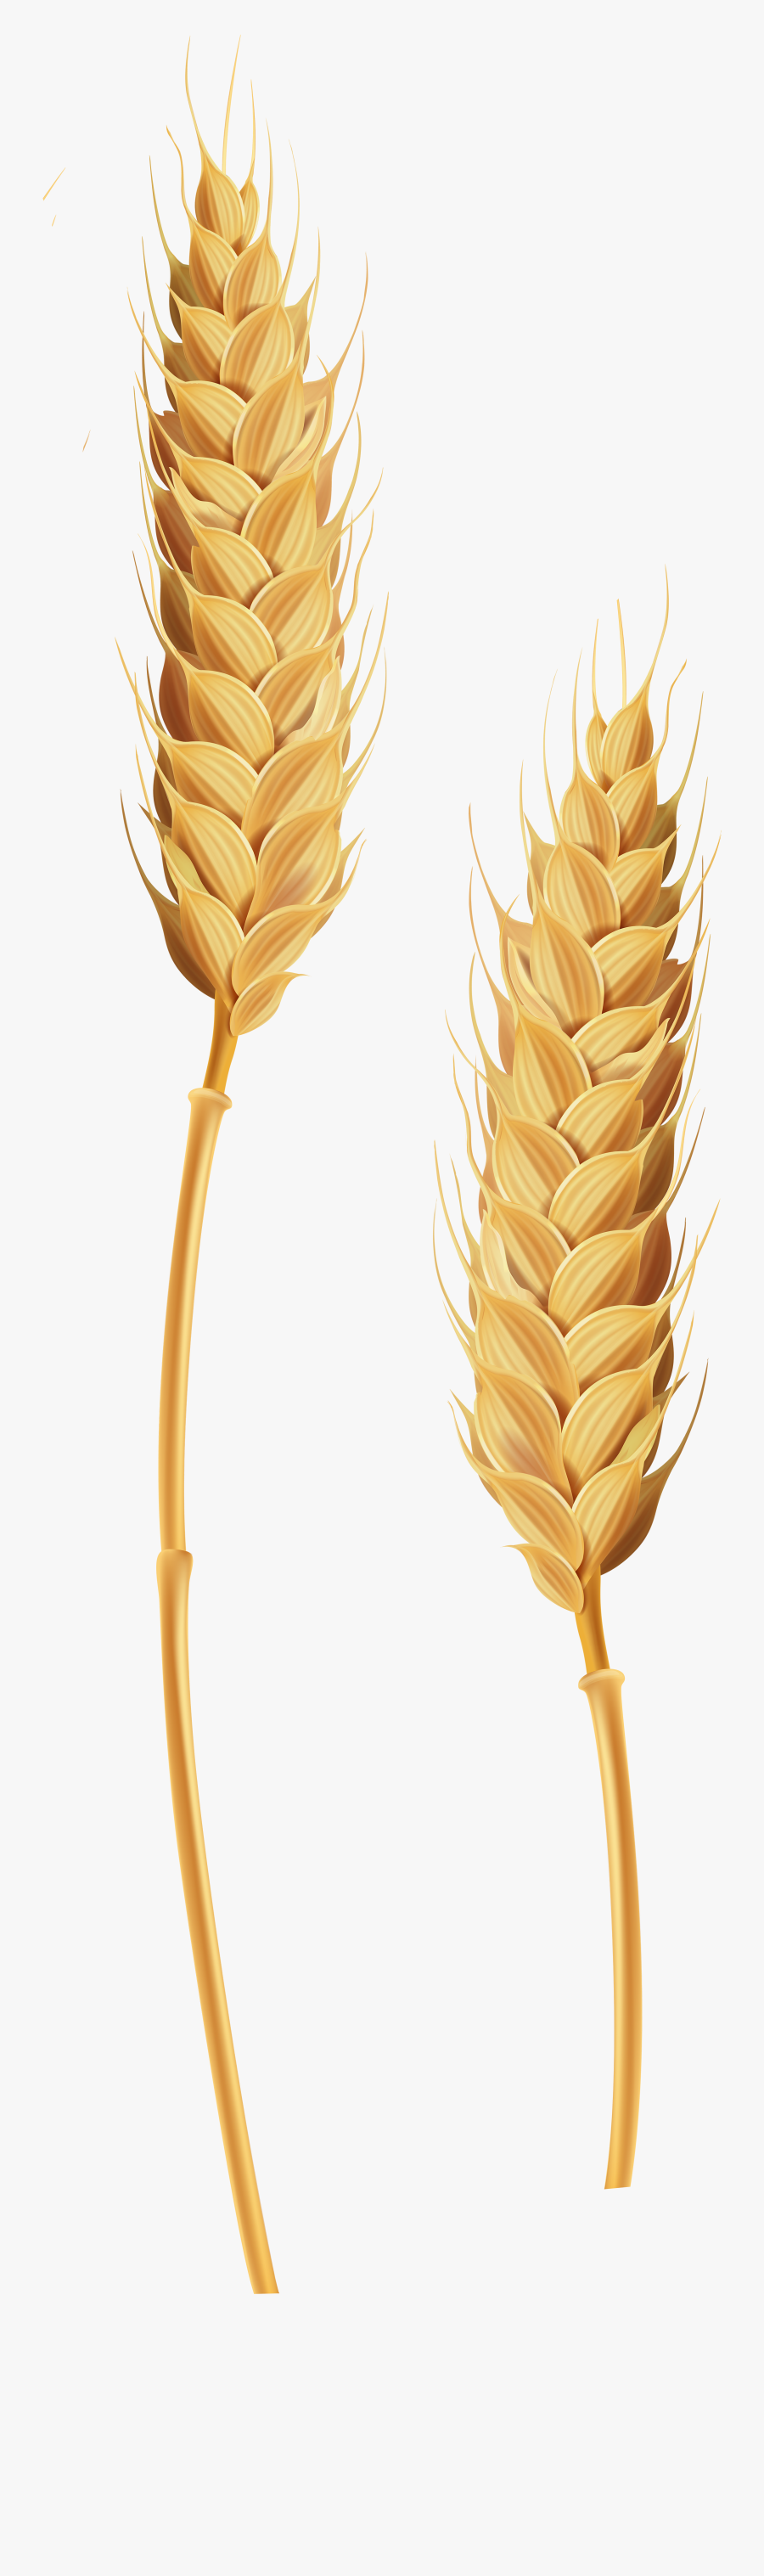 Wheat Stalk Png , Free Transparent Clipart.